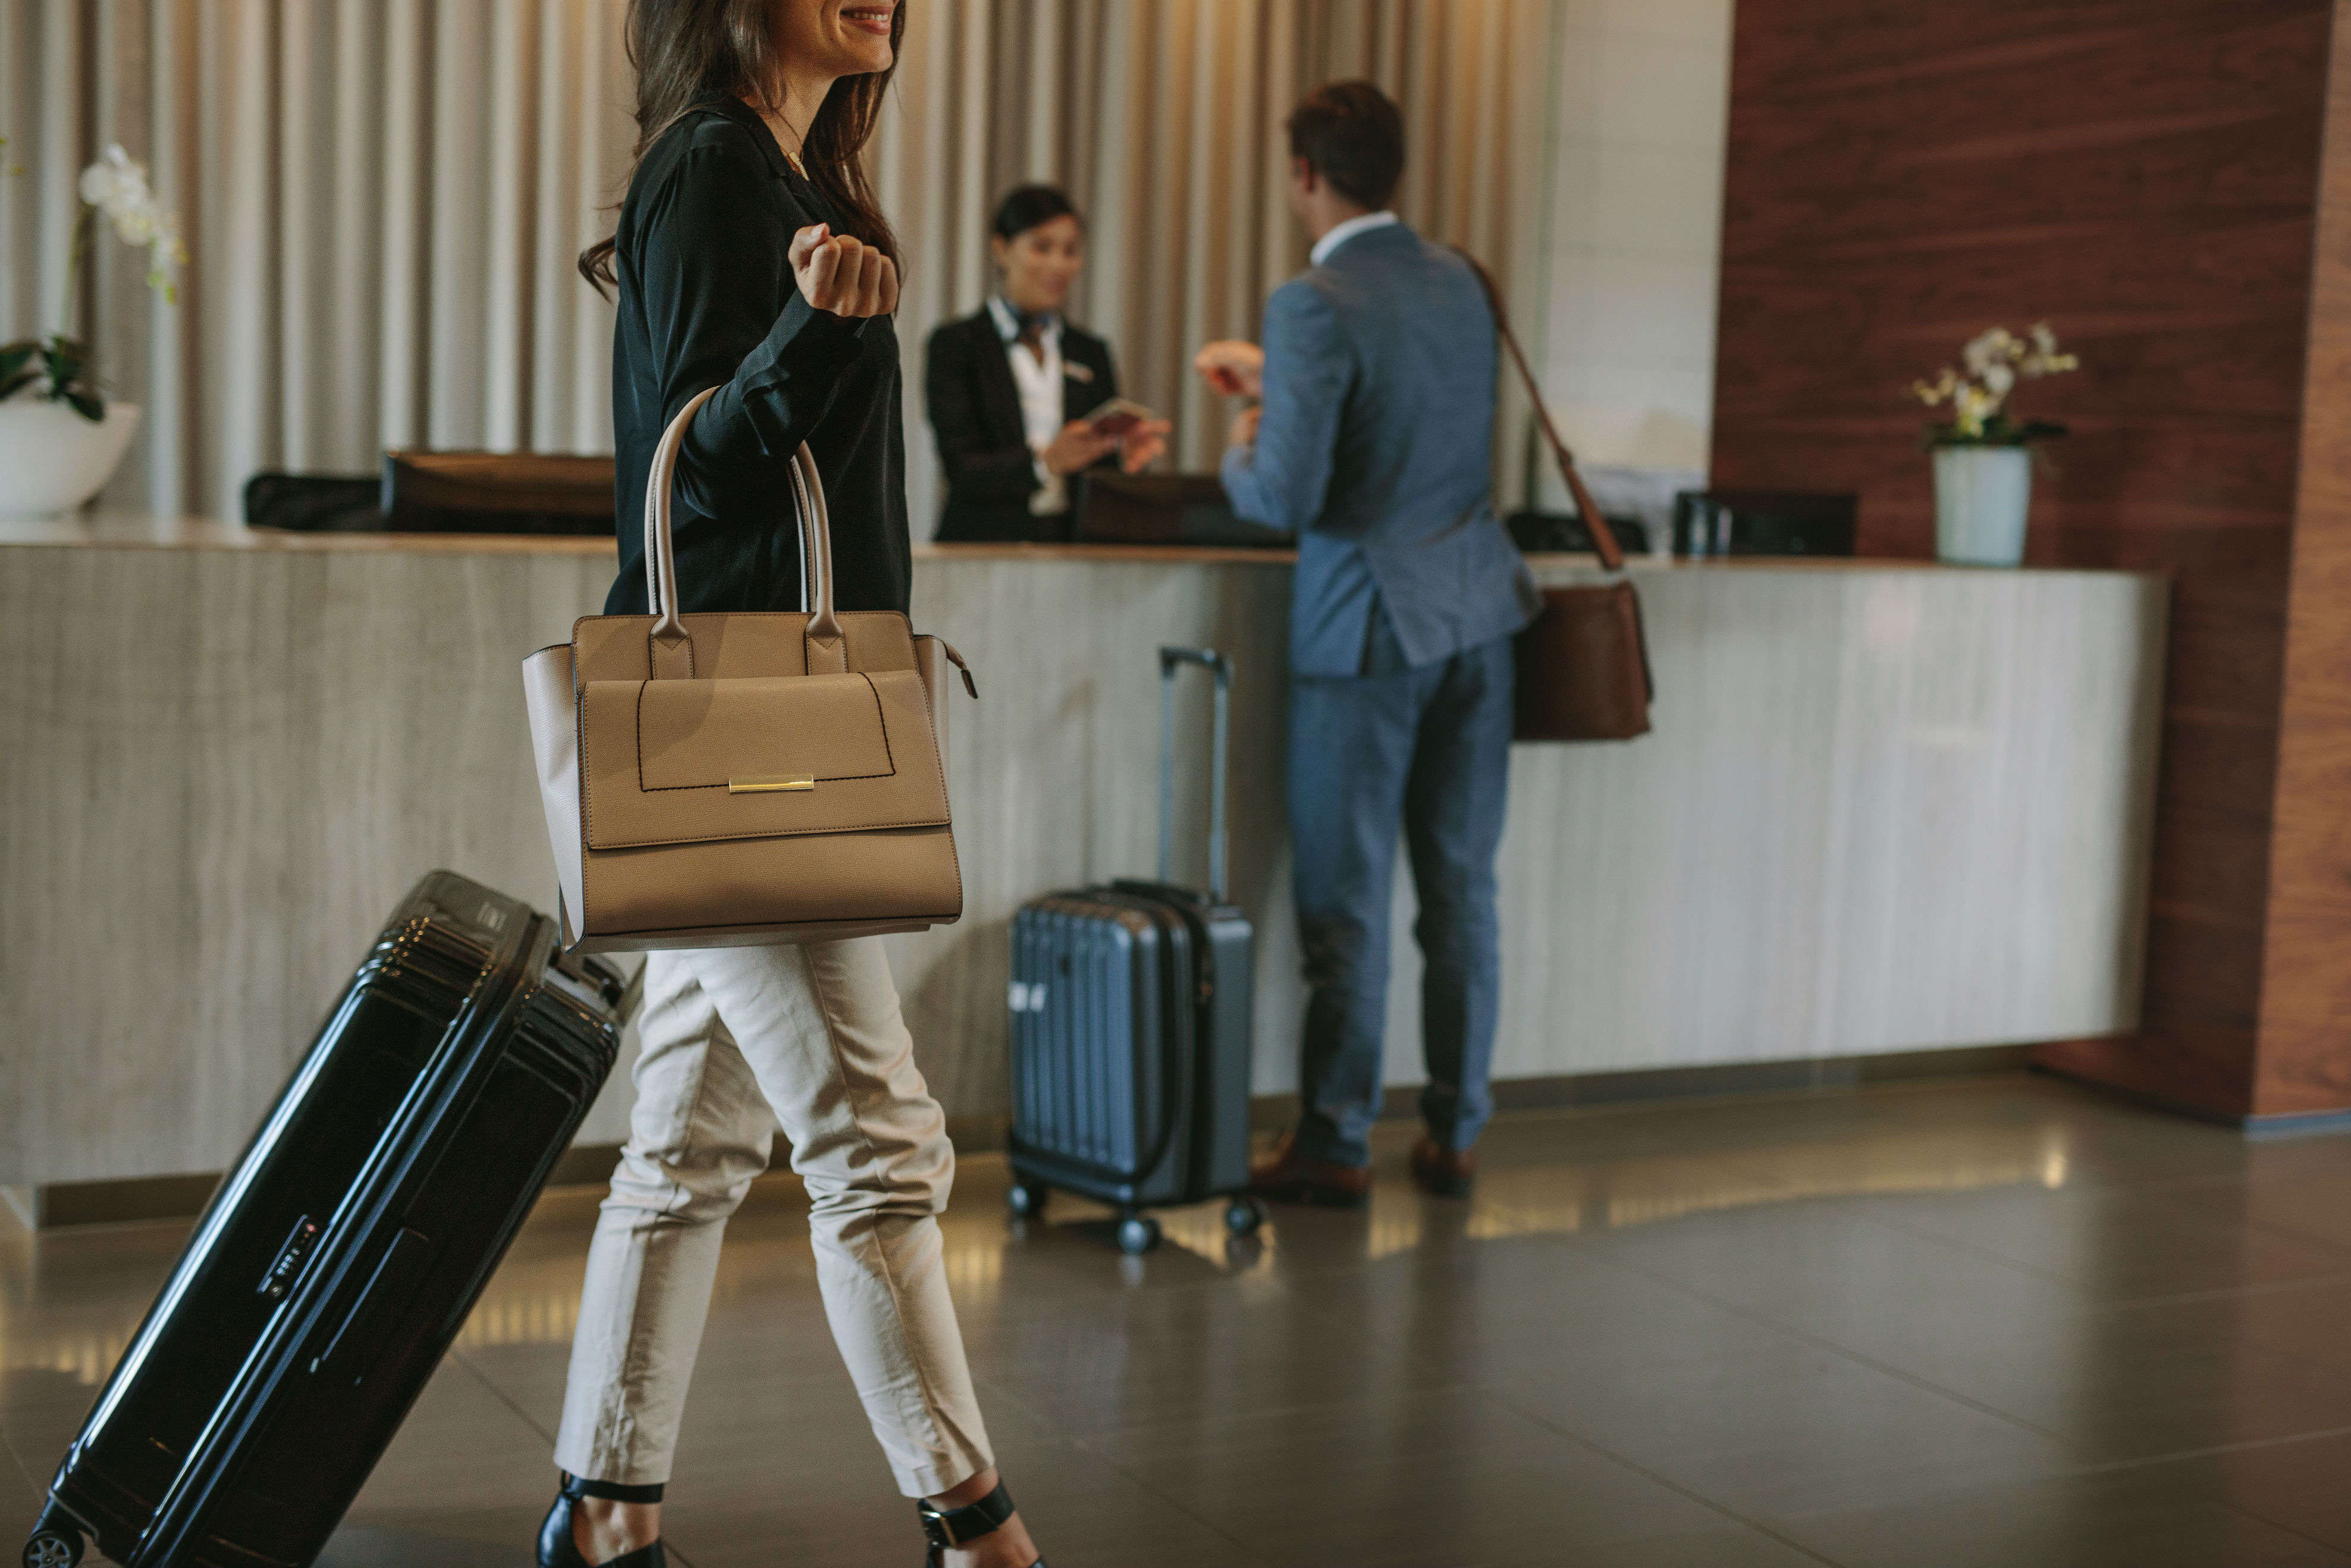 Hotels in Jalandhar for business and leisure travellers